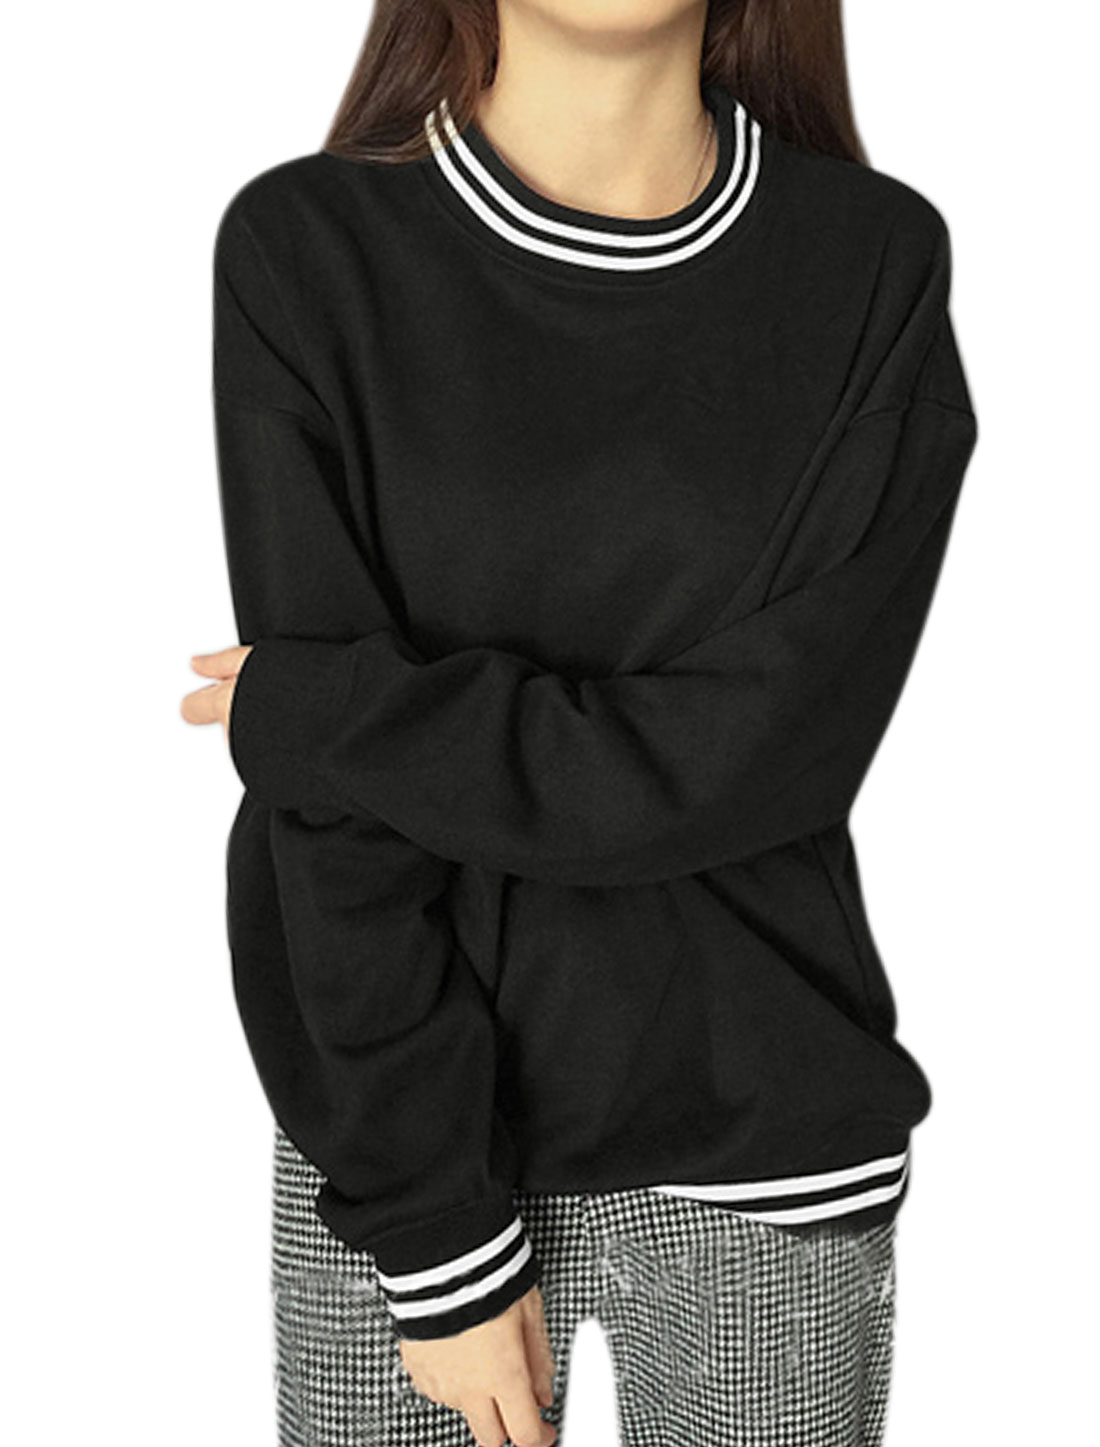 Lady Crew Neck Long Sleeves Varsity-Striped Casual T-Shirts Black XS